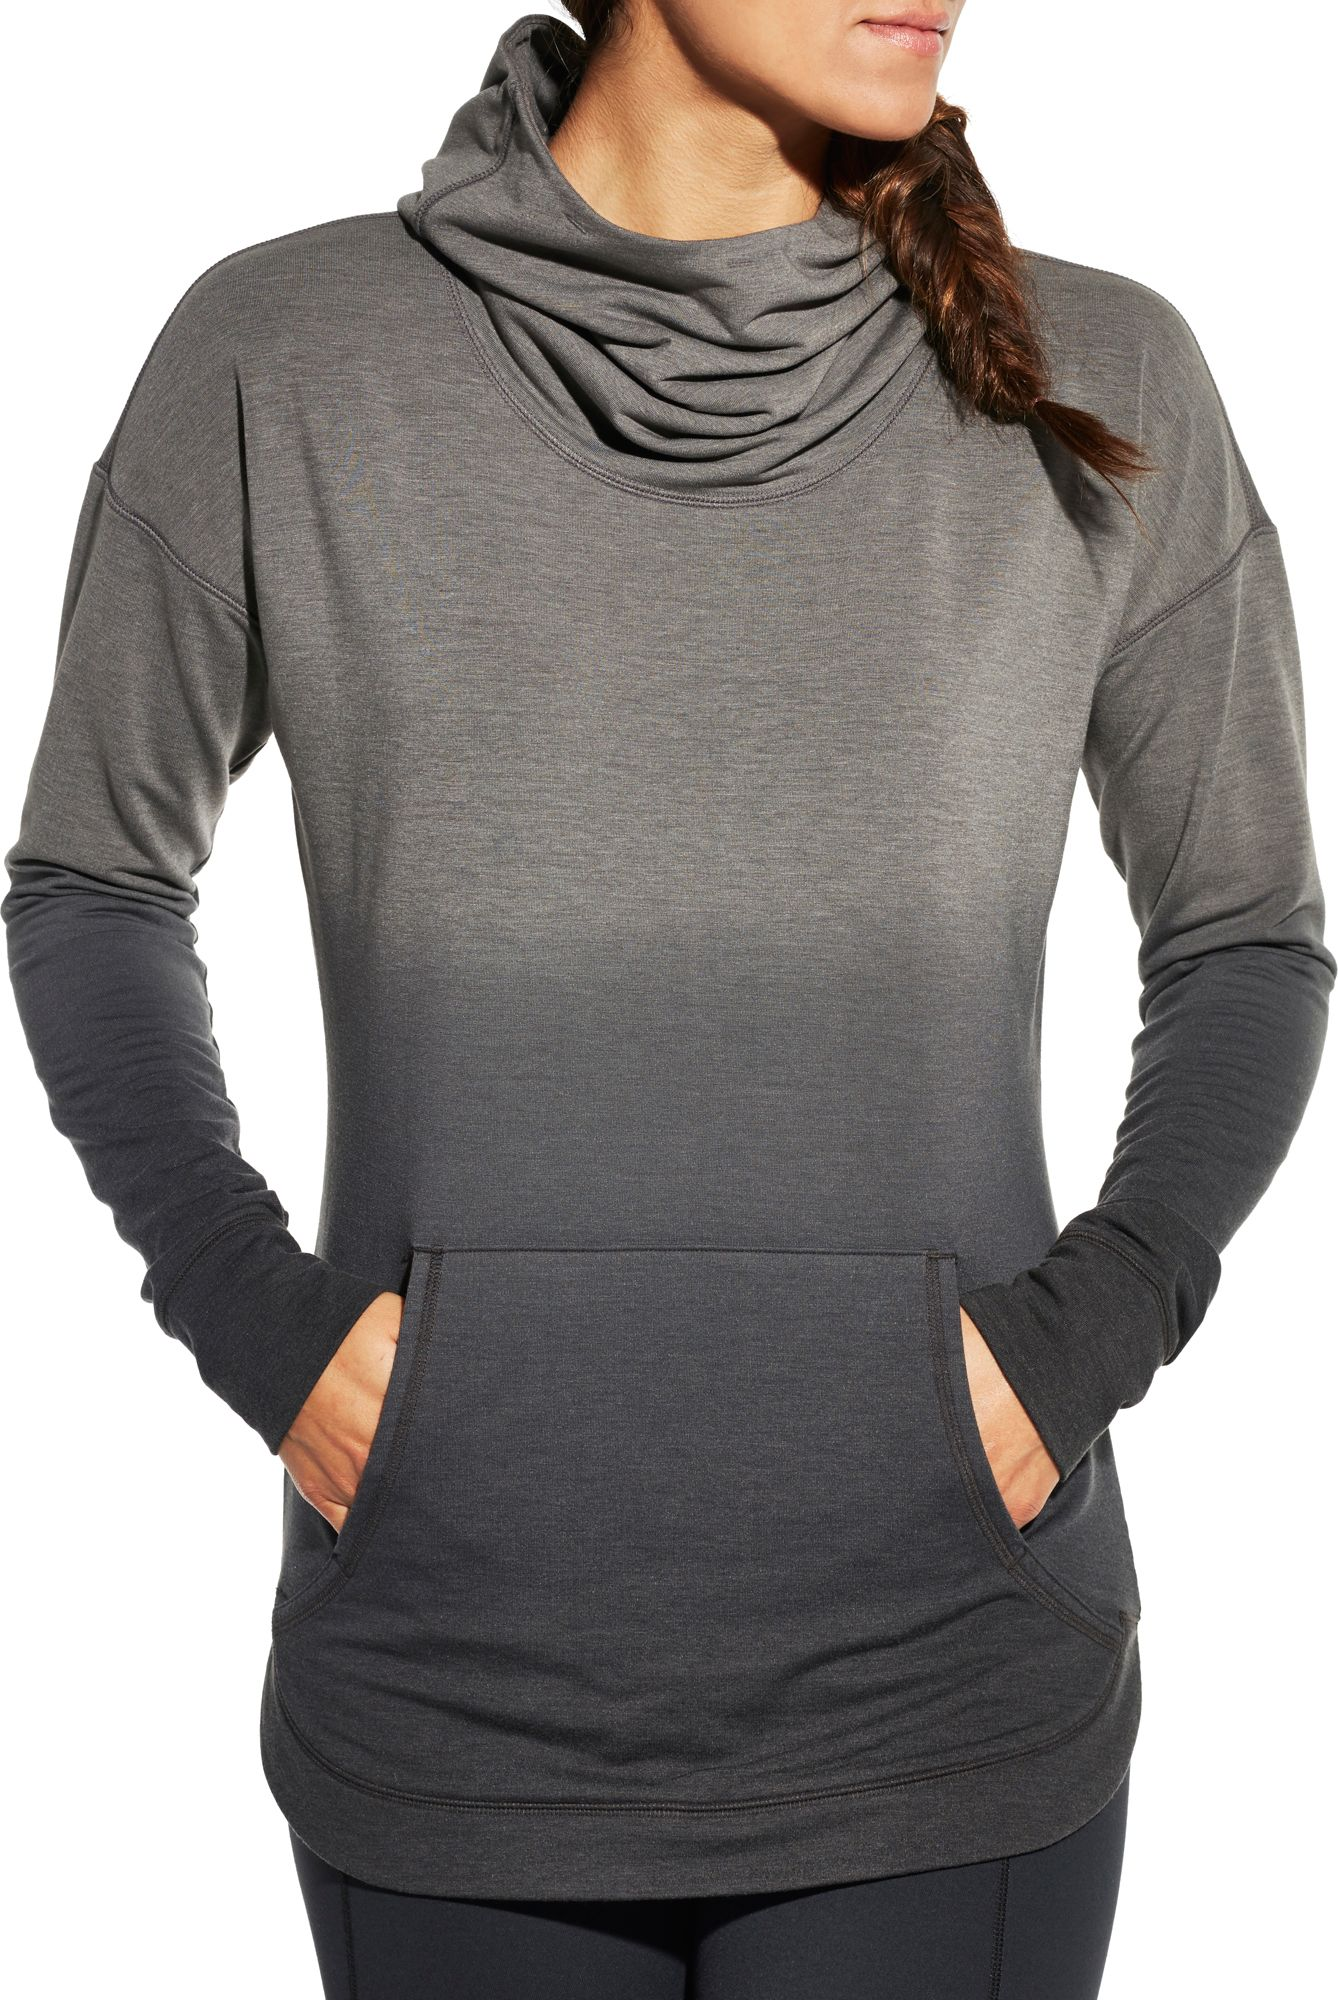 Women's Hoodies & Sweatshirts - Nike & More | DICK'S Sporting Goods